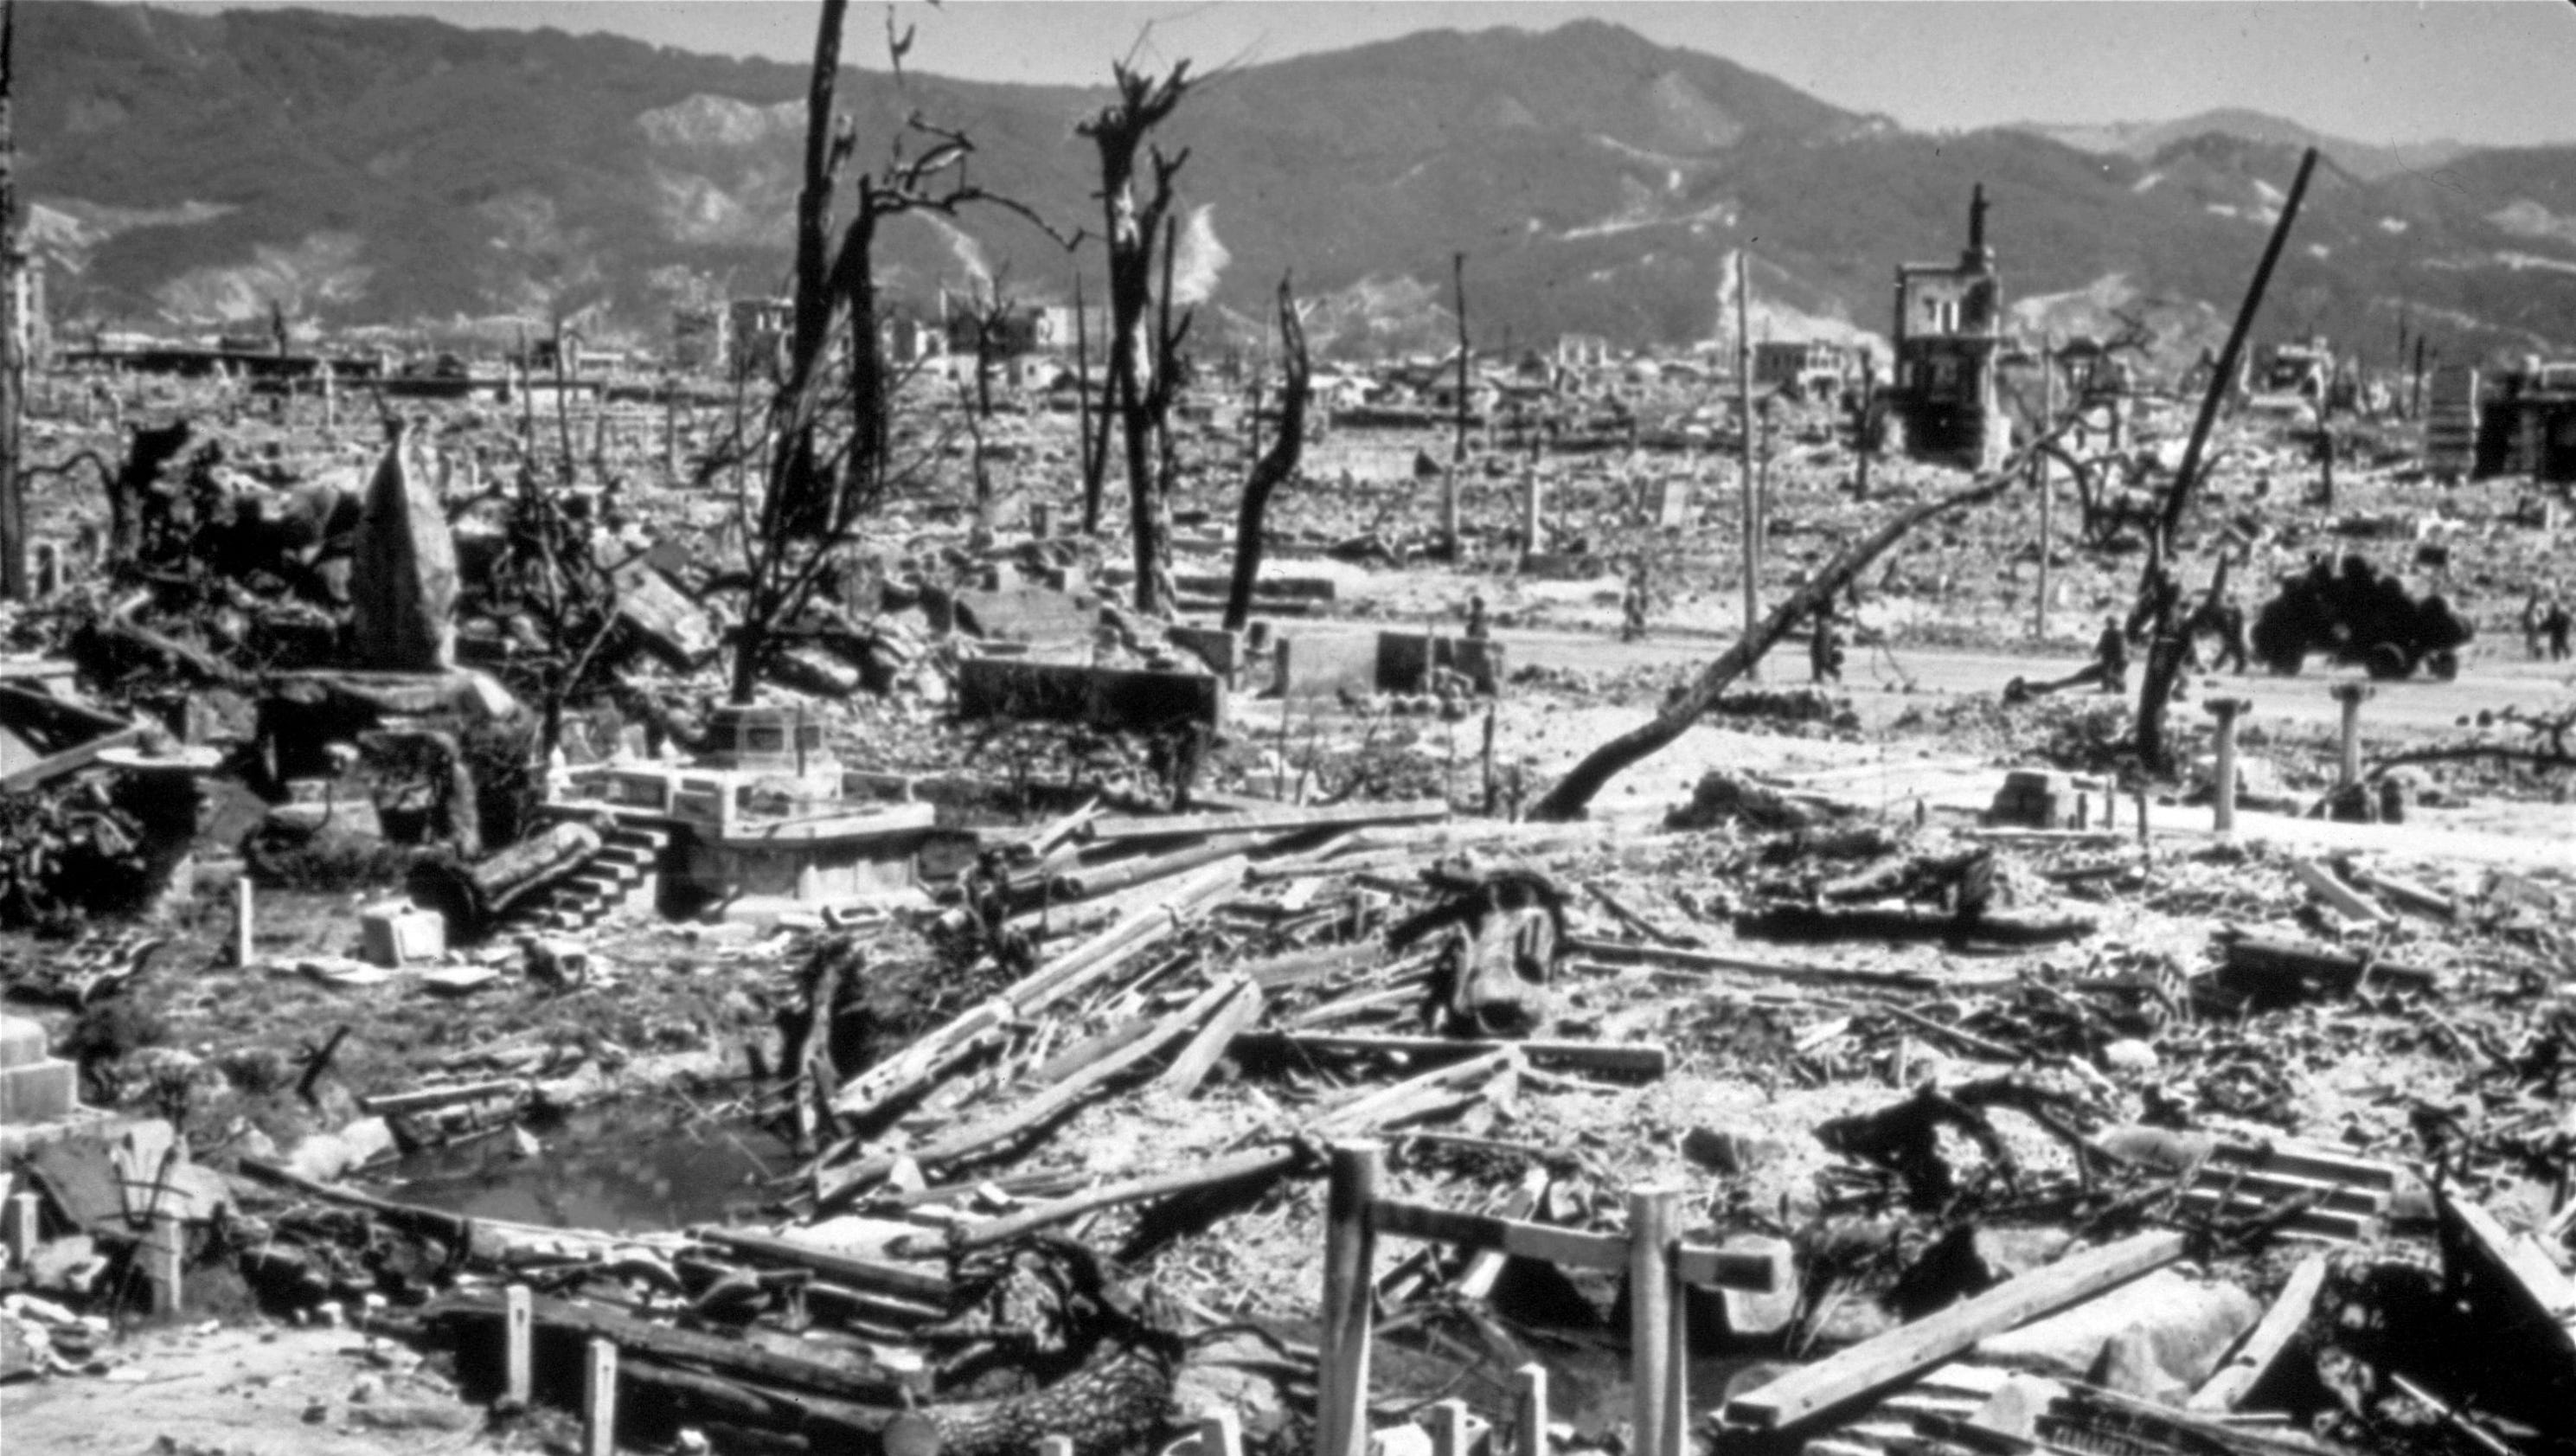 bombing of hiroshima Sunao tsuboi on miyuki bridge, where he was photographed three hours after the bombing of hiroshima photograph: alamy it is not as if sunao tsuboi needs another reminder of his violent encounter.